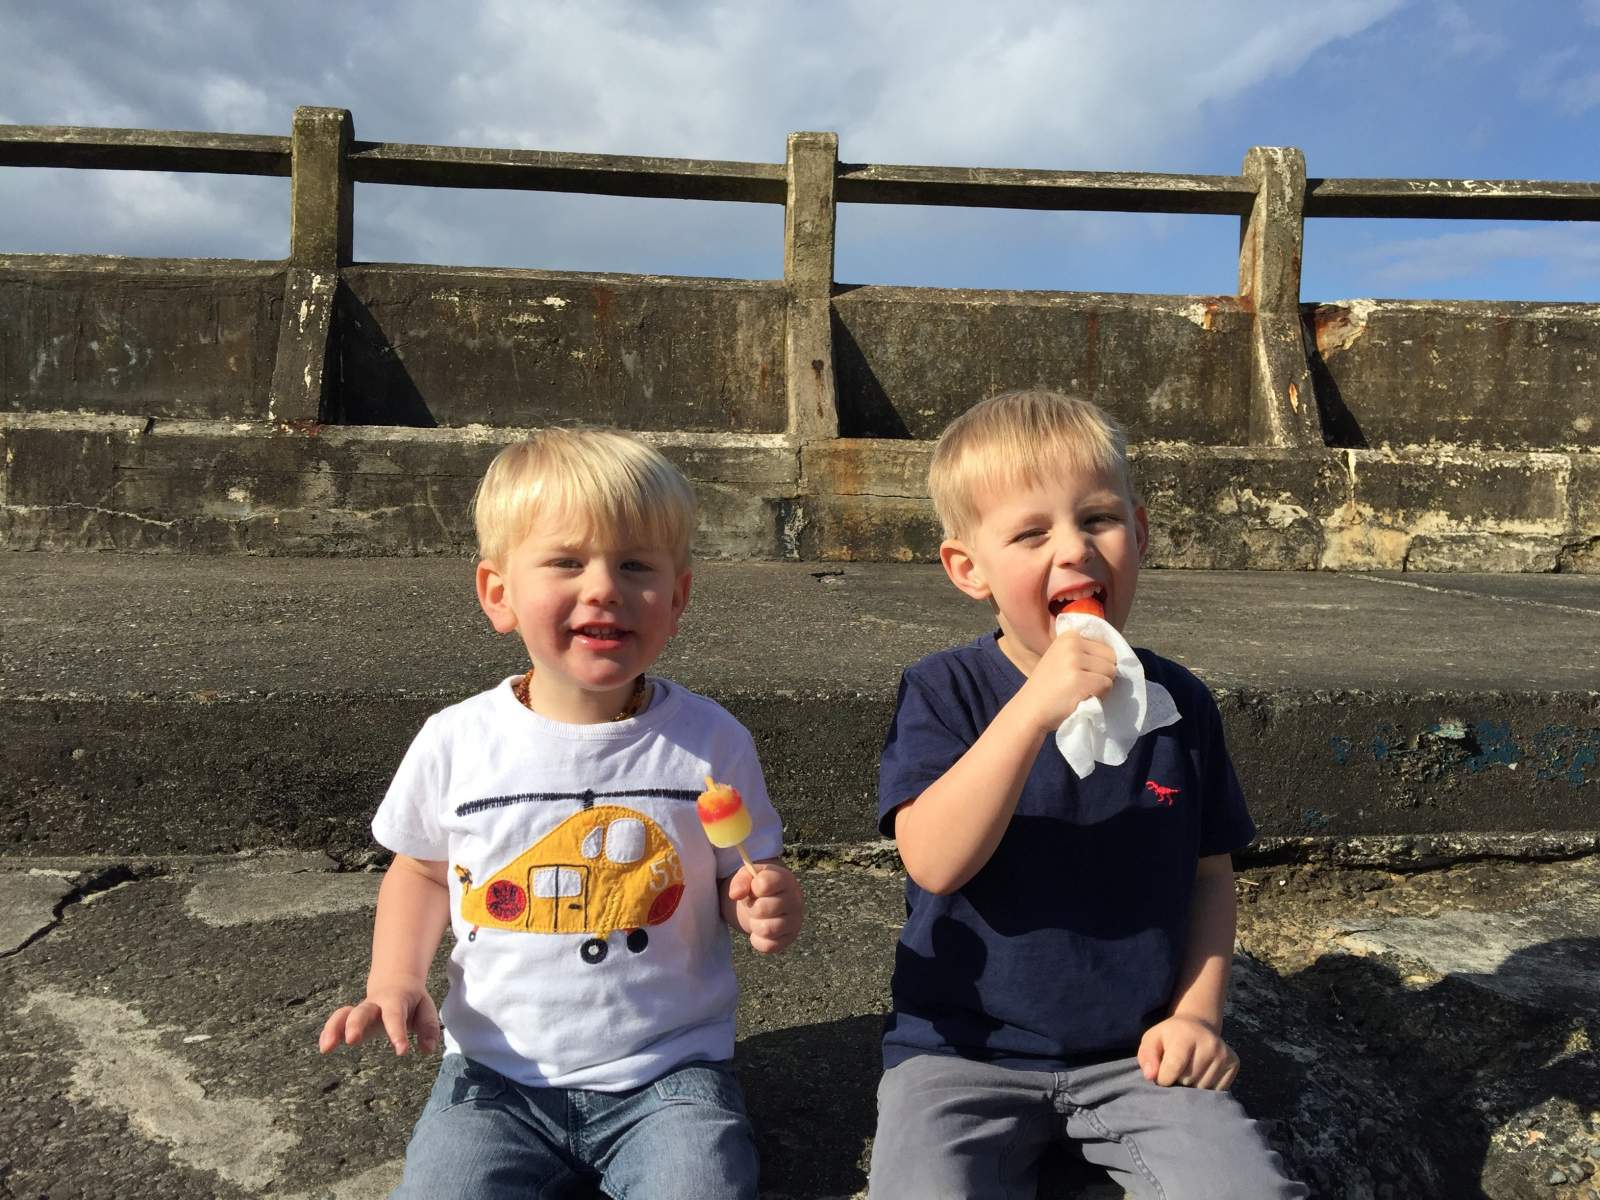 two boys sit in tynemouth swimming pool and eat ice lollies in the sun